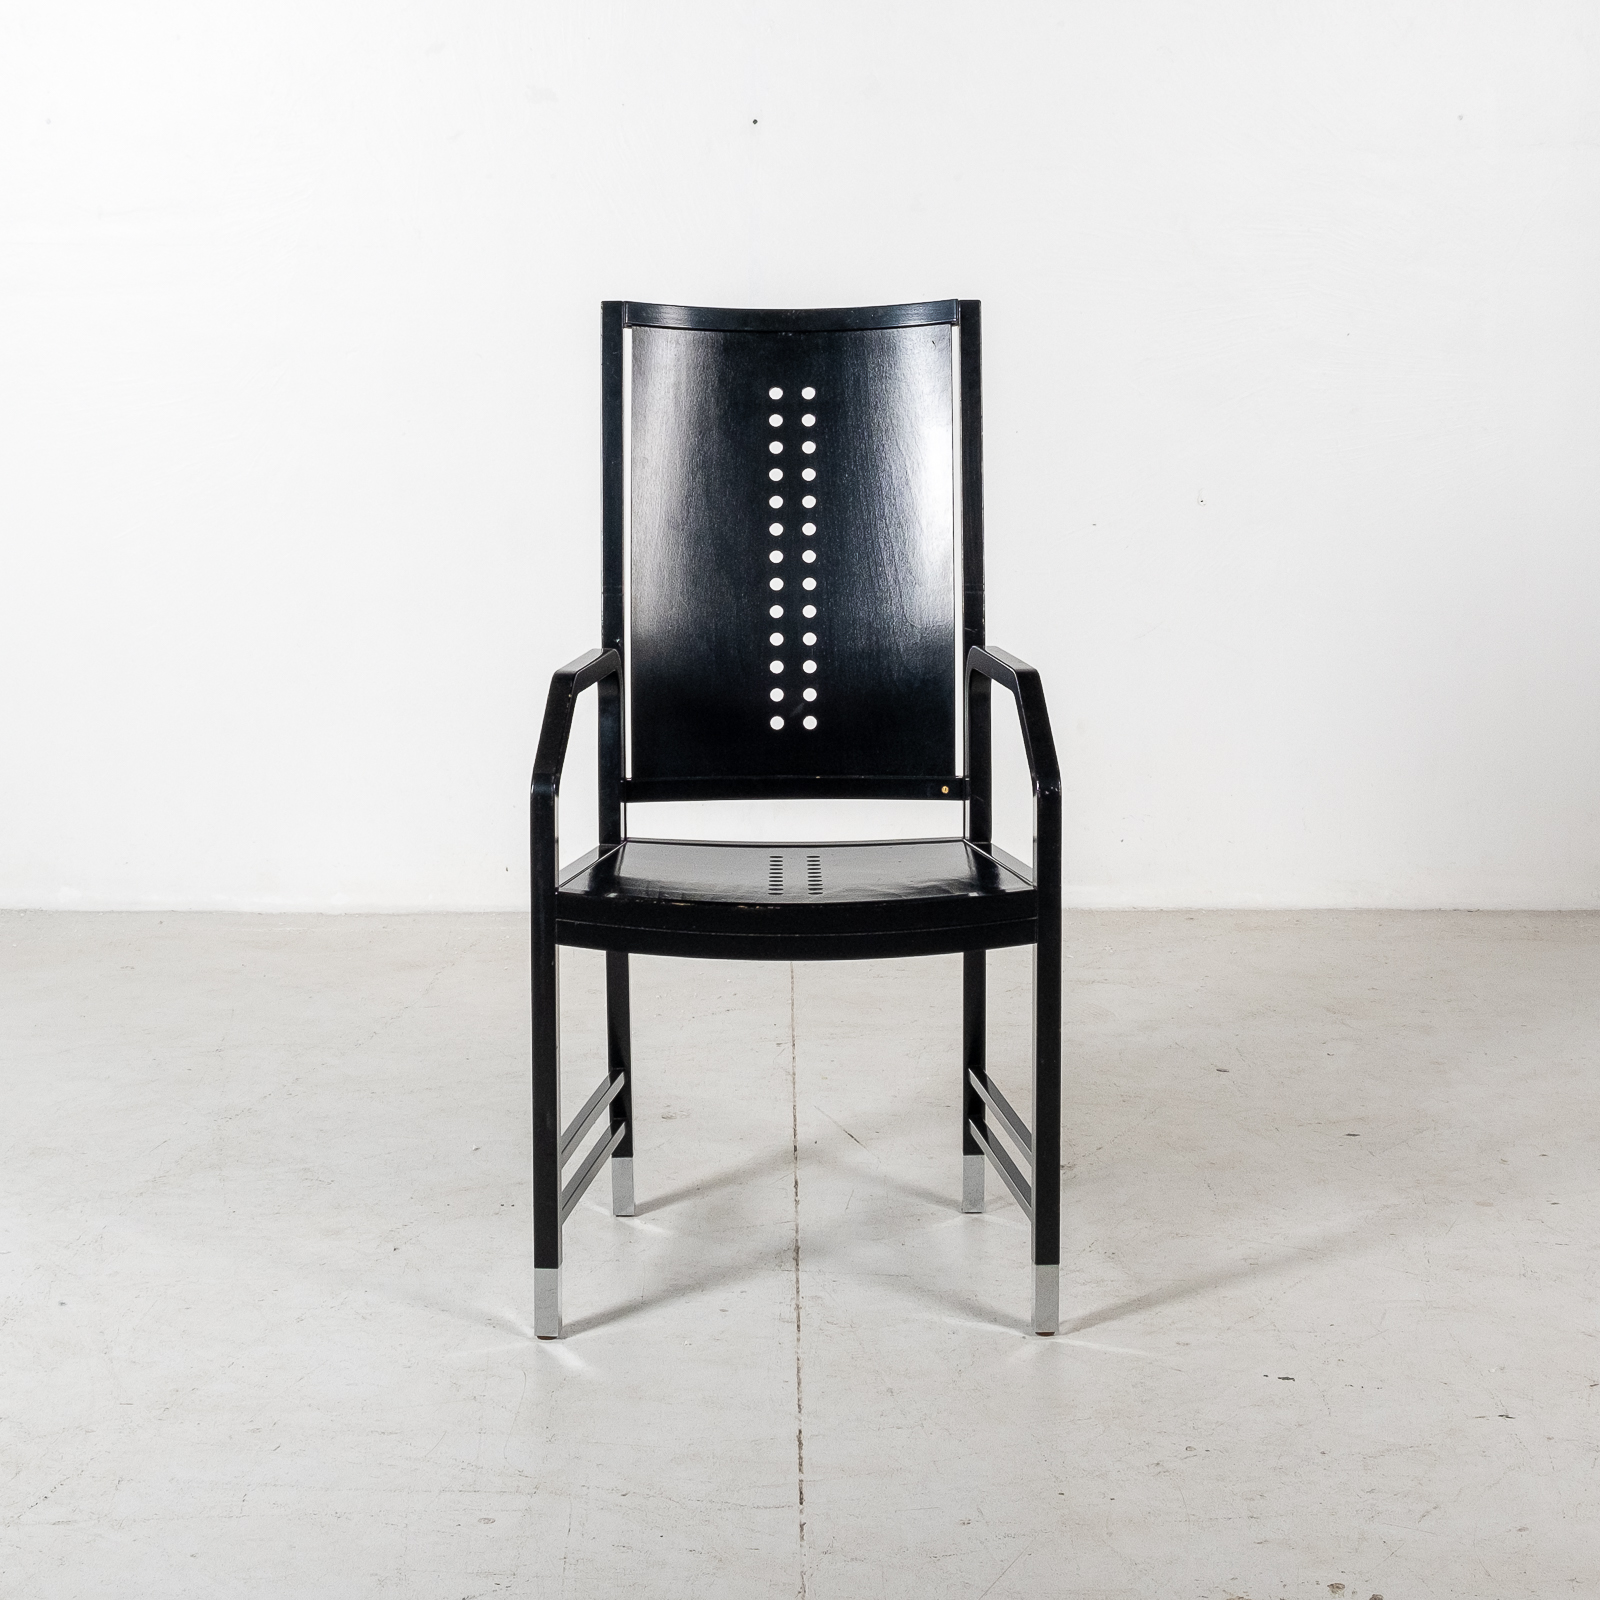 Thonet Chair In Black Hoffmann Style, 1980s, Germany06